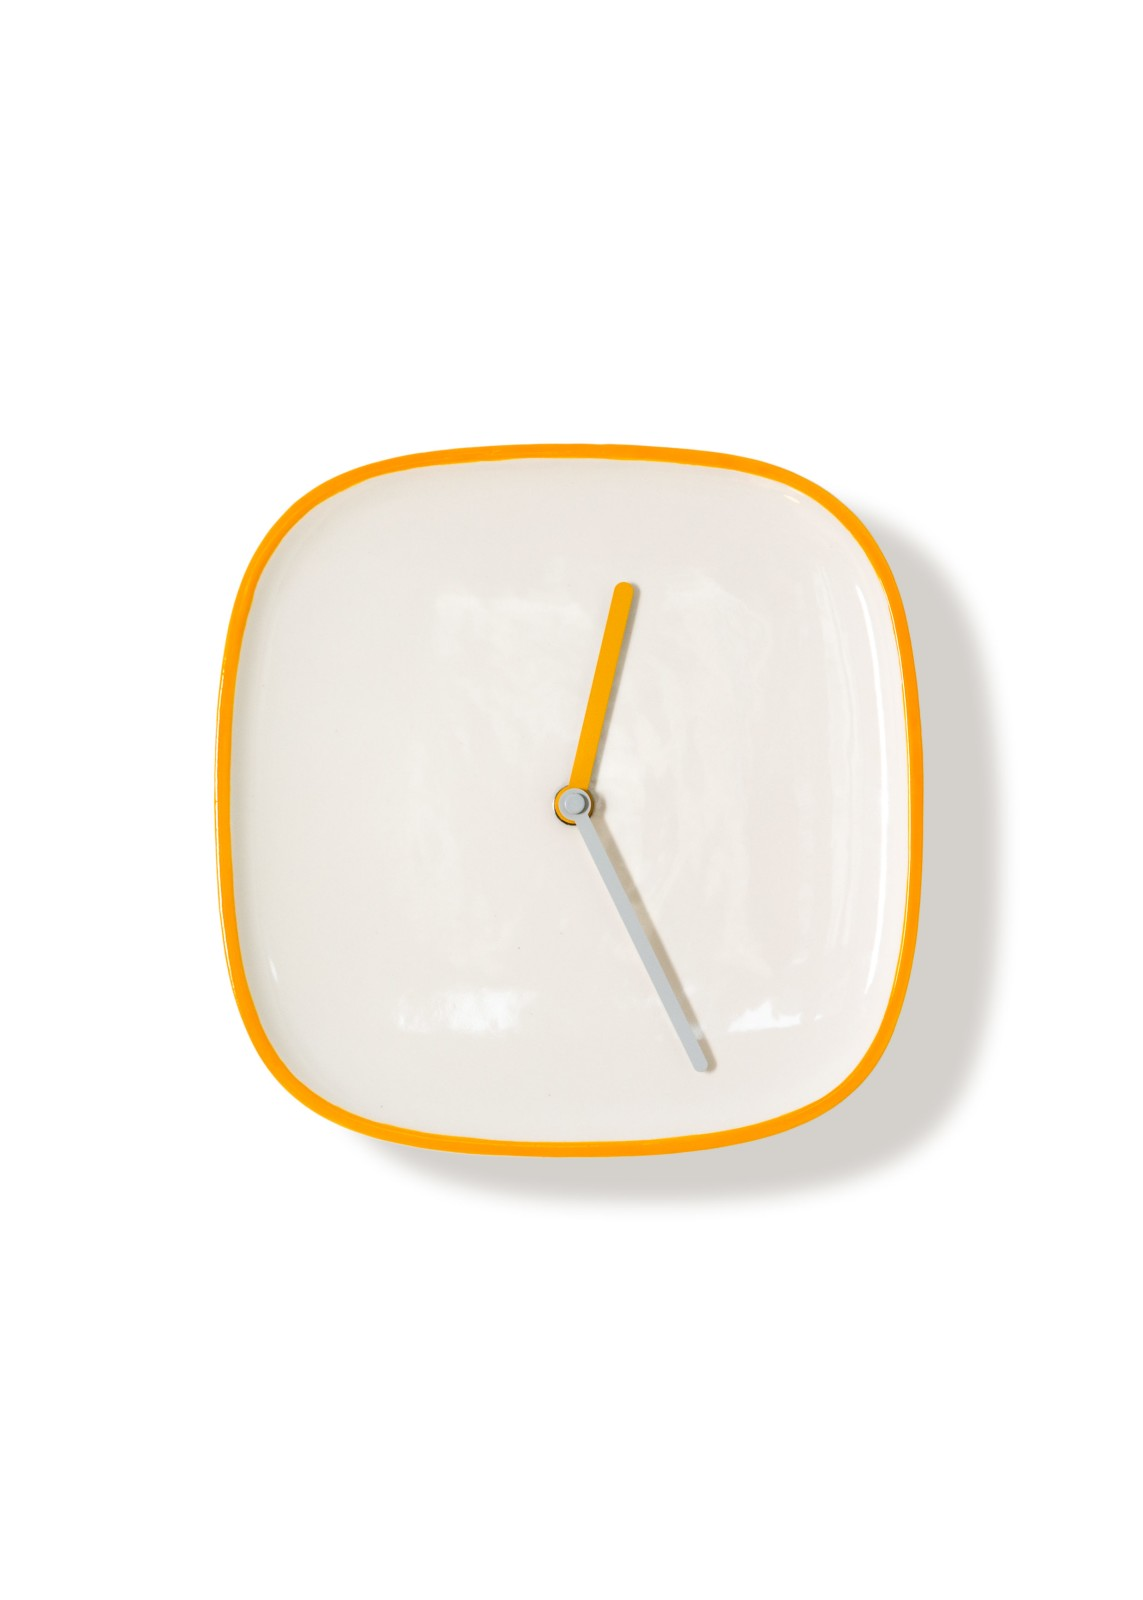 PLATE Clock White & Orange